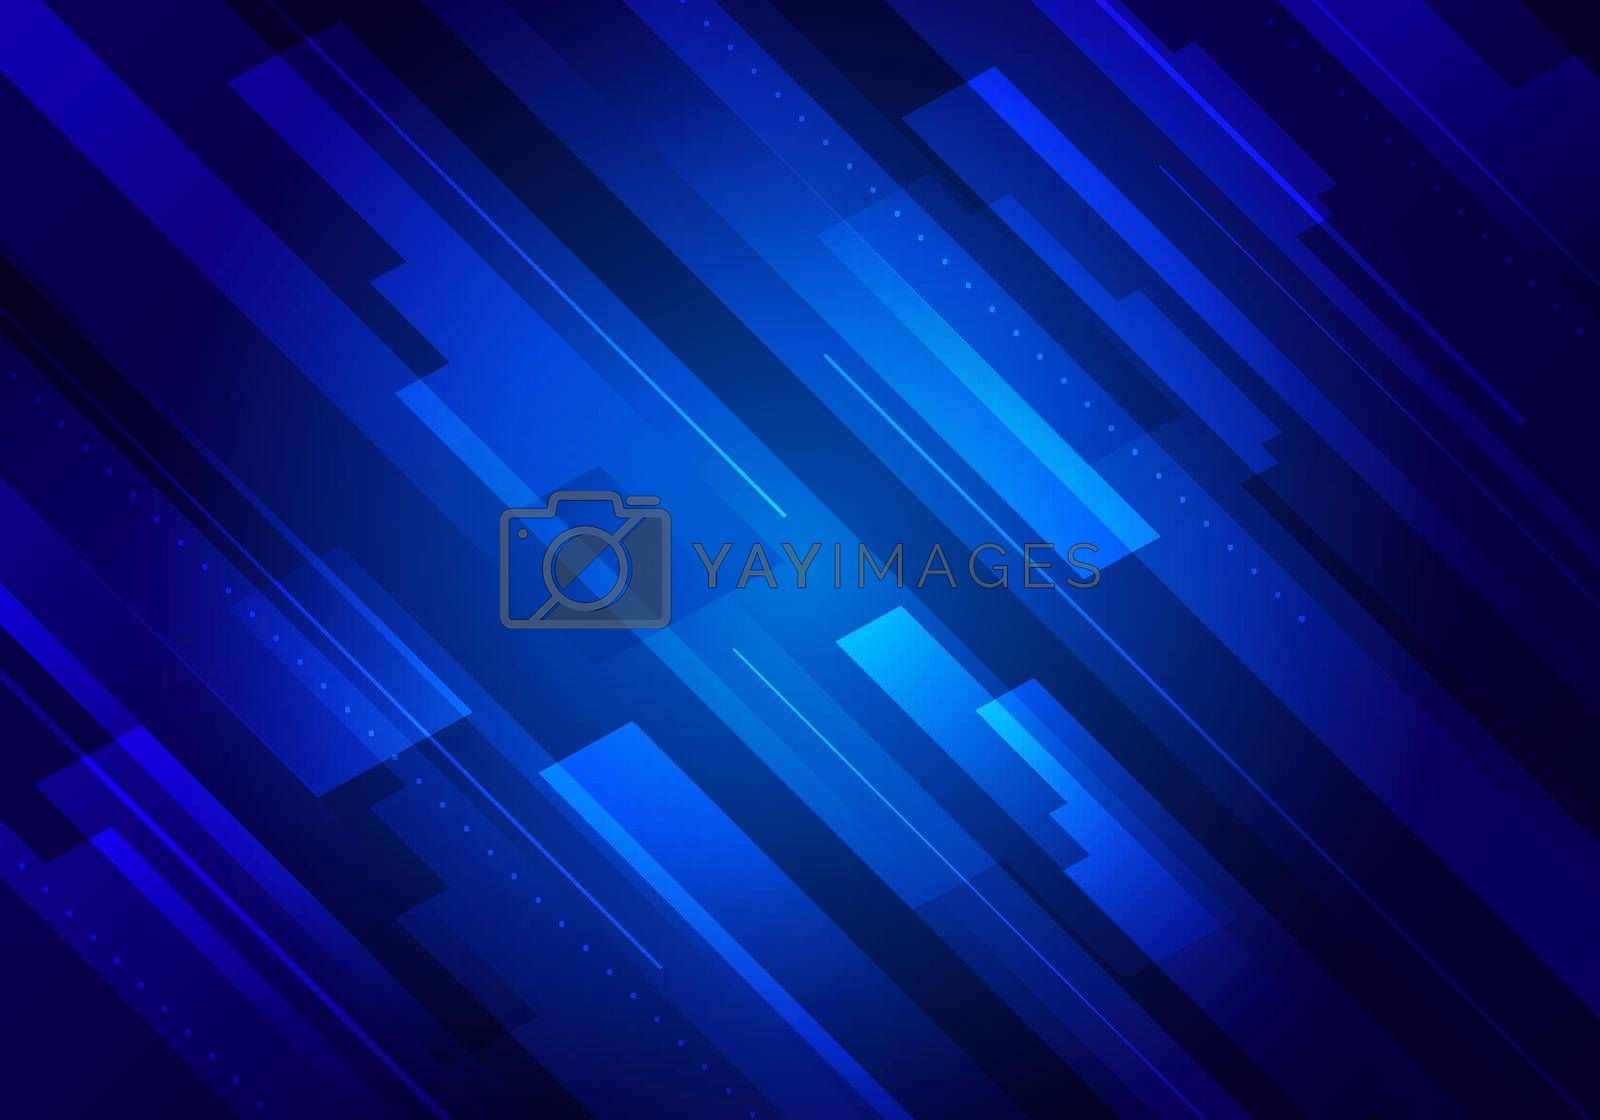 Abstract technology futuristic concept blue glowing diagonal stripes layered on dark background. Vector illustration